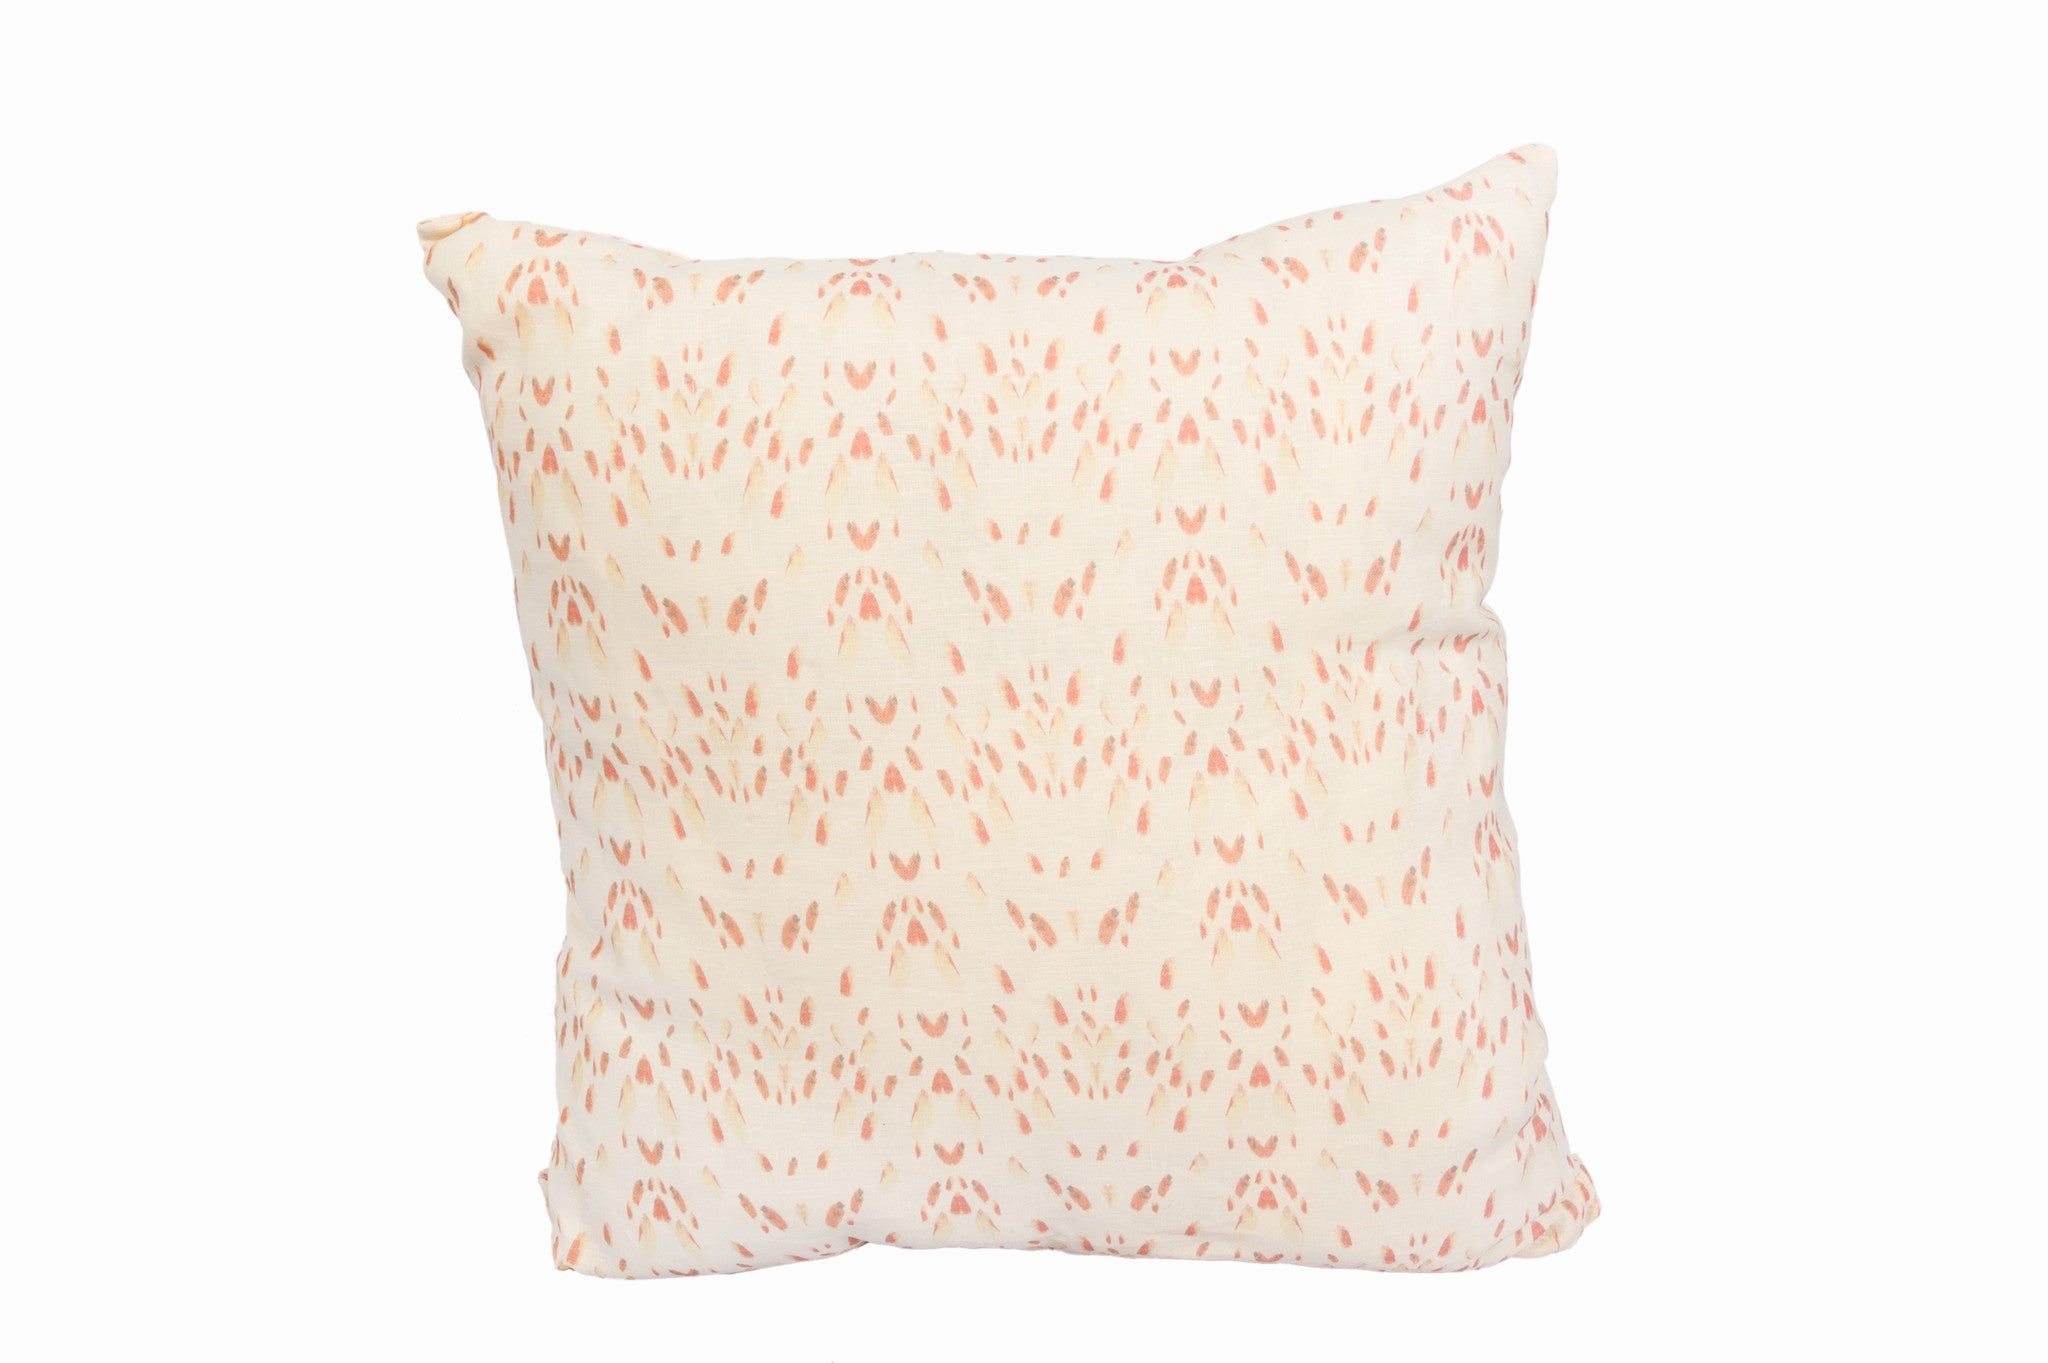 Out of Africa Pillow